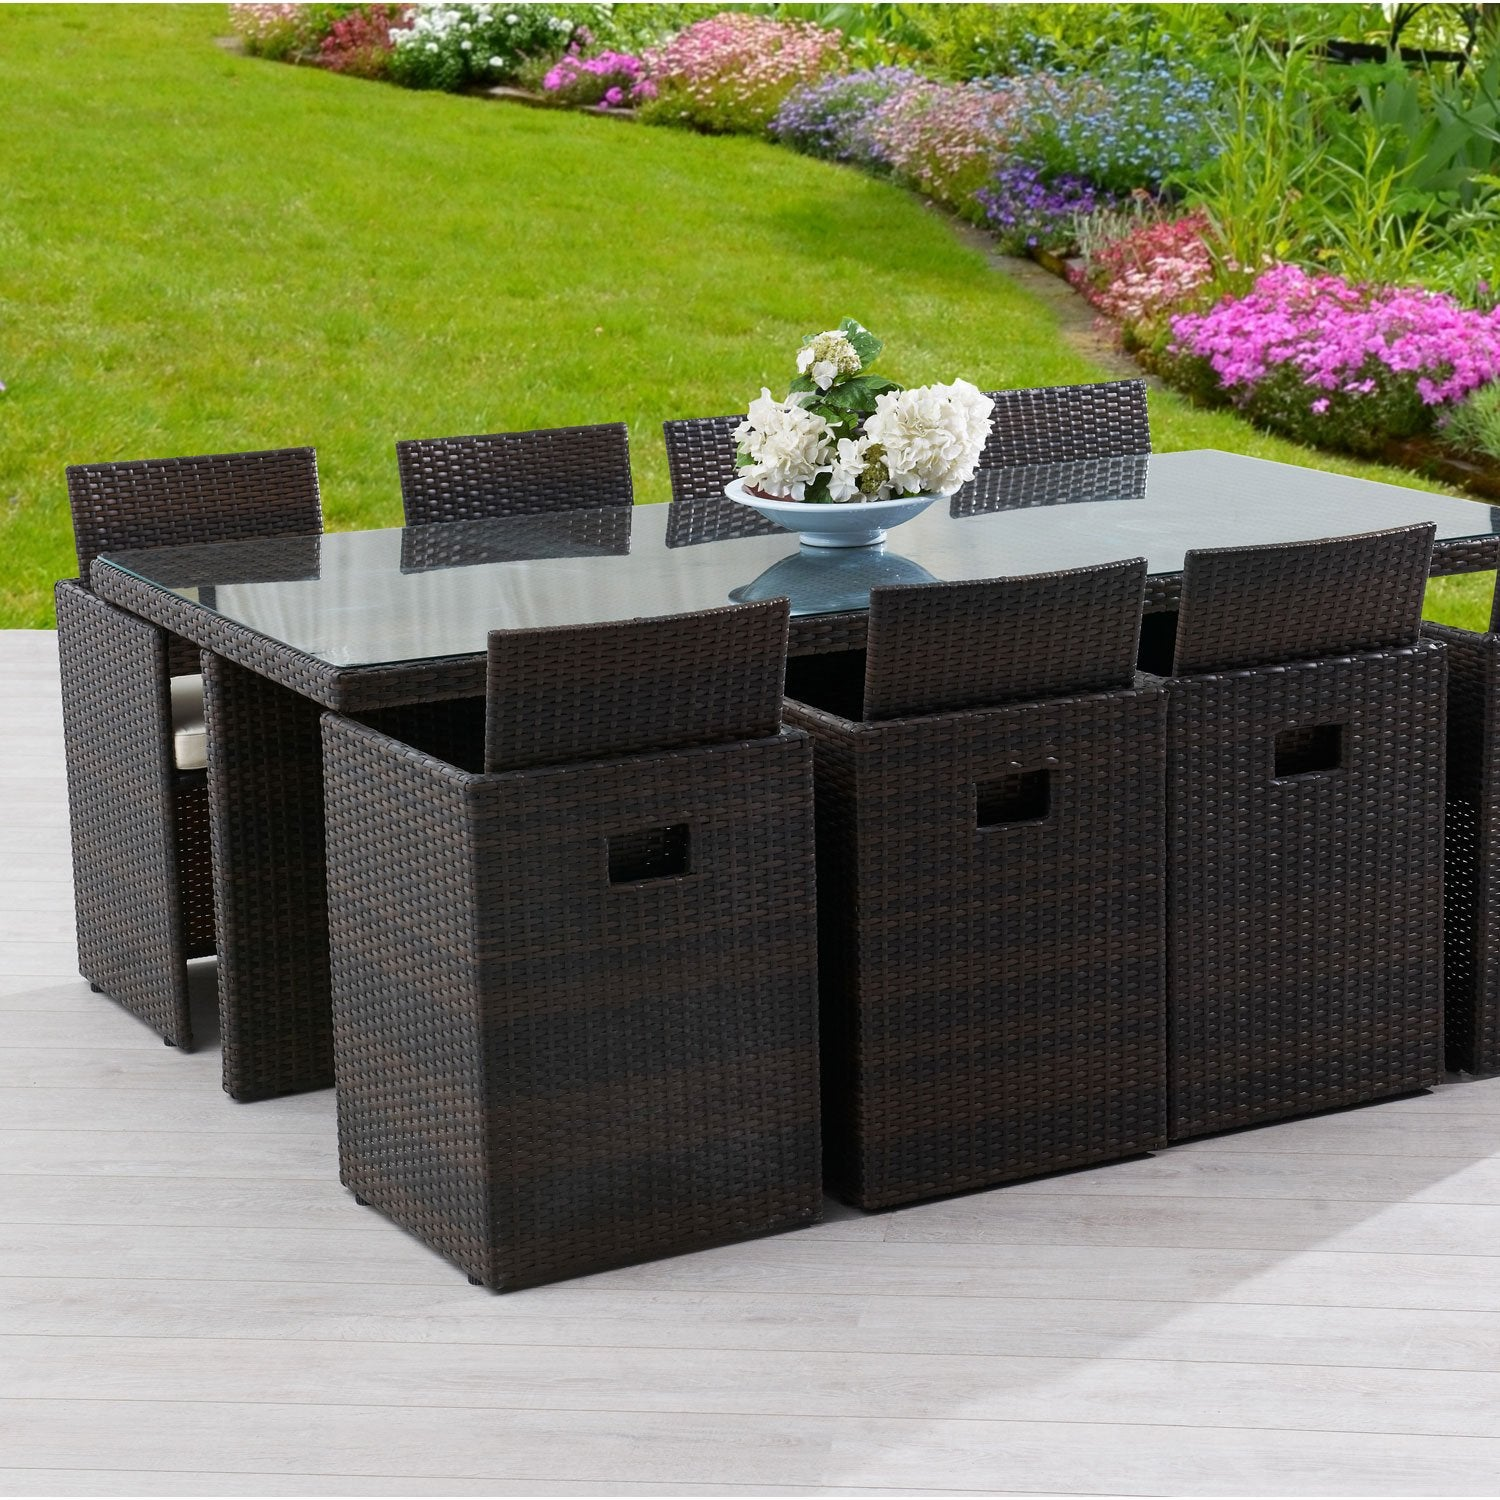 Salon de jardin encastrable r sine tress e marron 1 table for Meubles jardin resine tressee